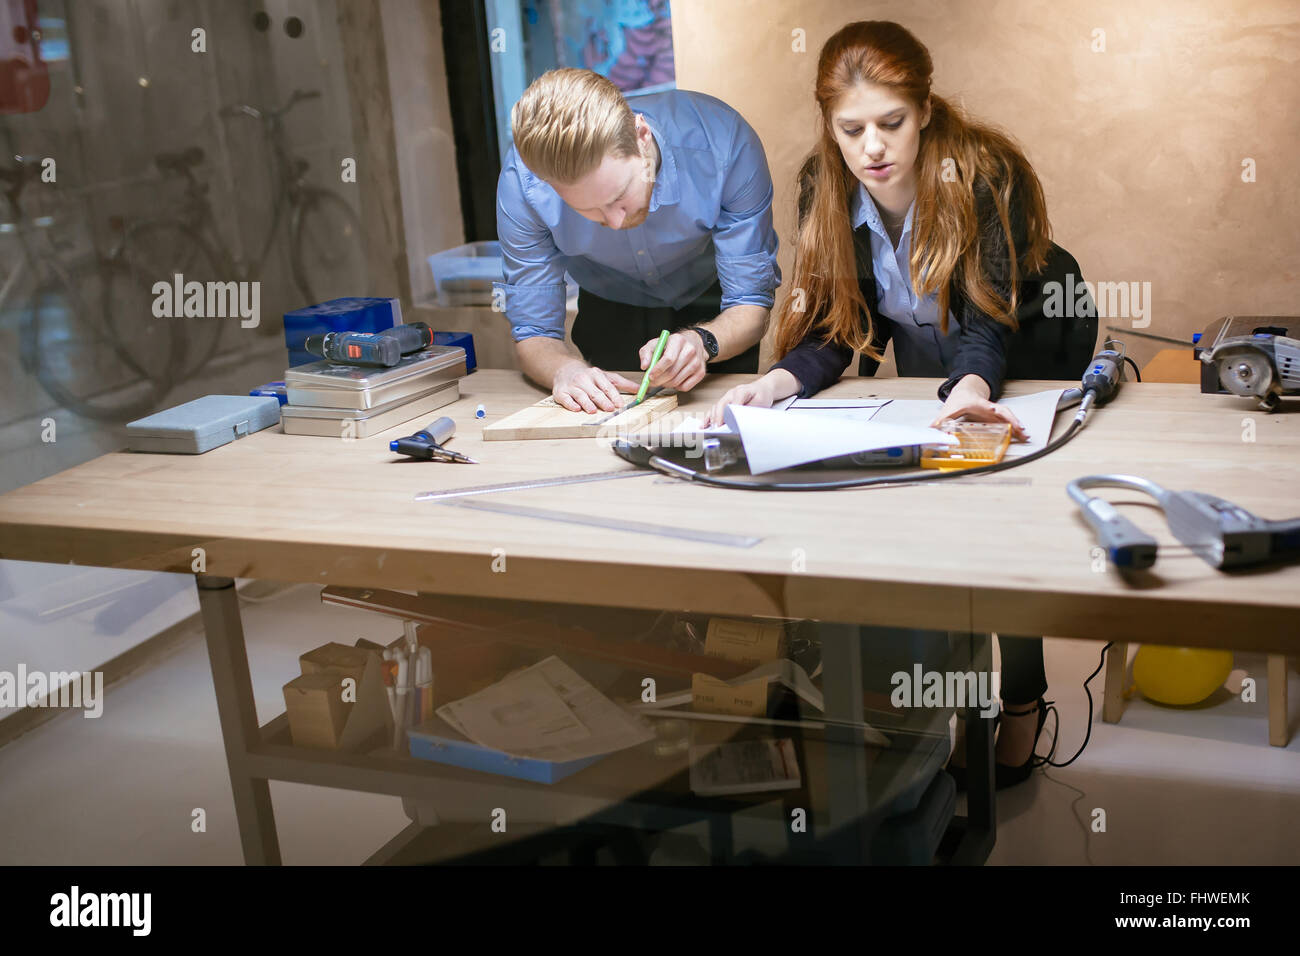 Designers working in modern office with handful of tools - Stock Image